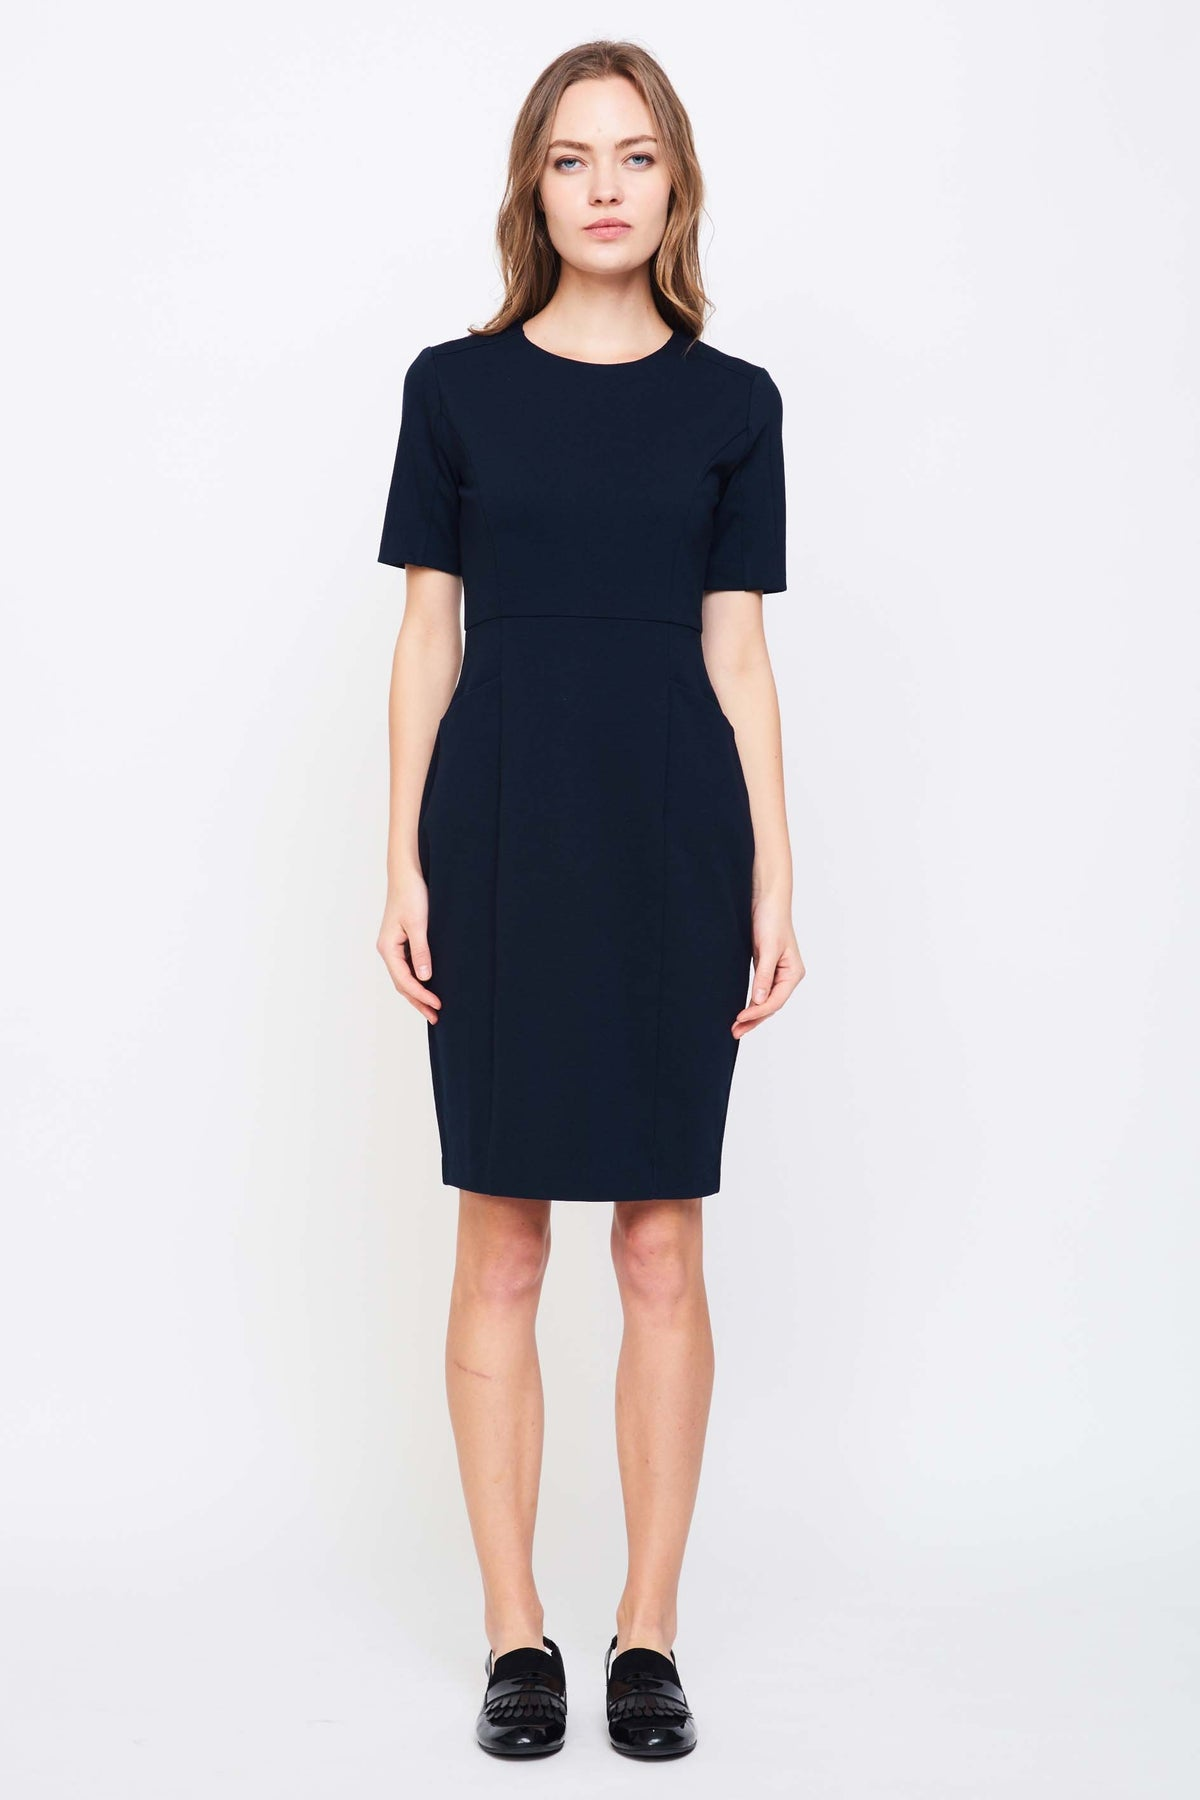 Tailored Dress With Pockets In Navy